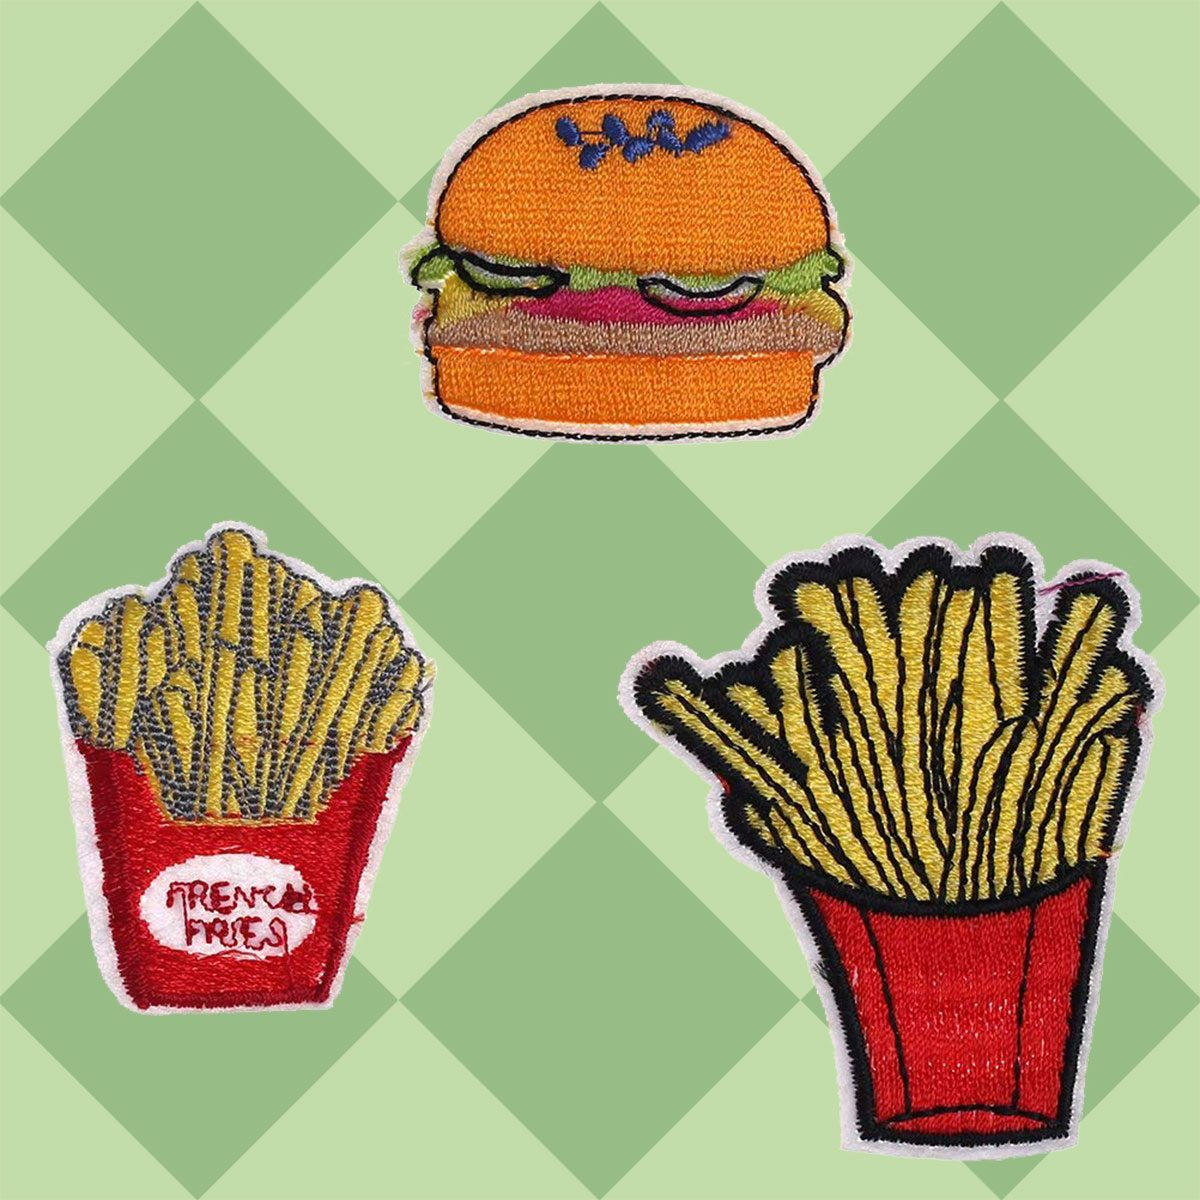 8pcs Assorted Food Patches Hamburger Dessert Fries Iron on Appliques Clothing Decoration